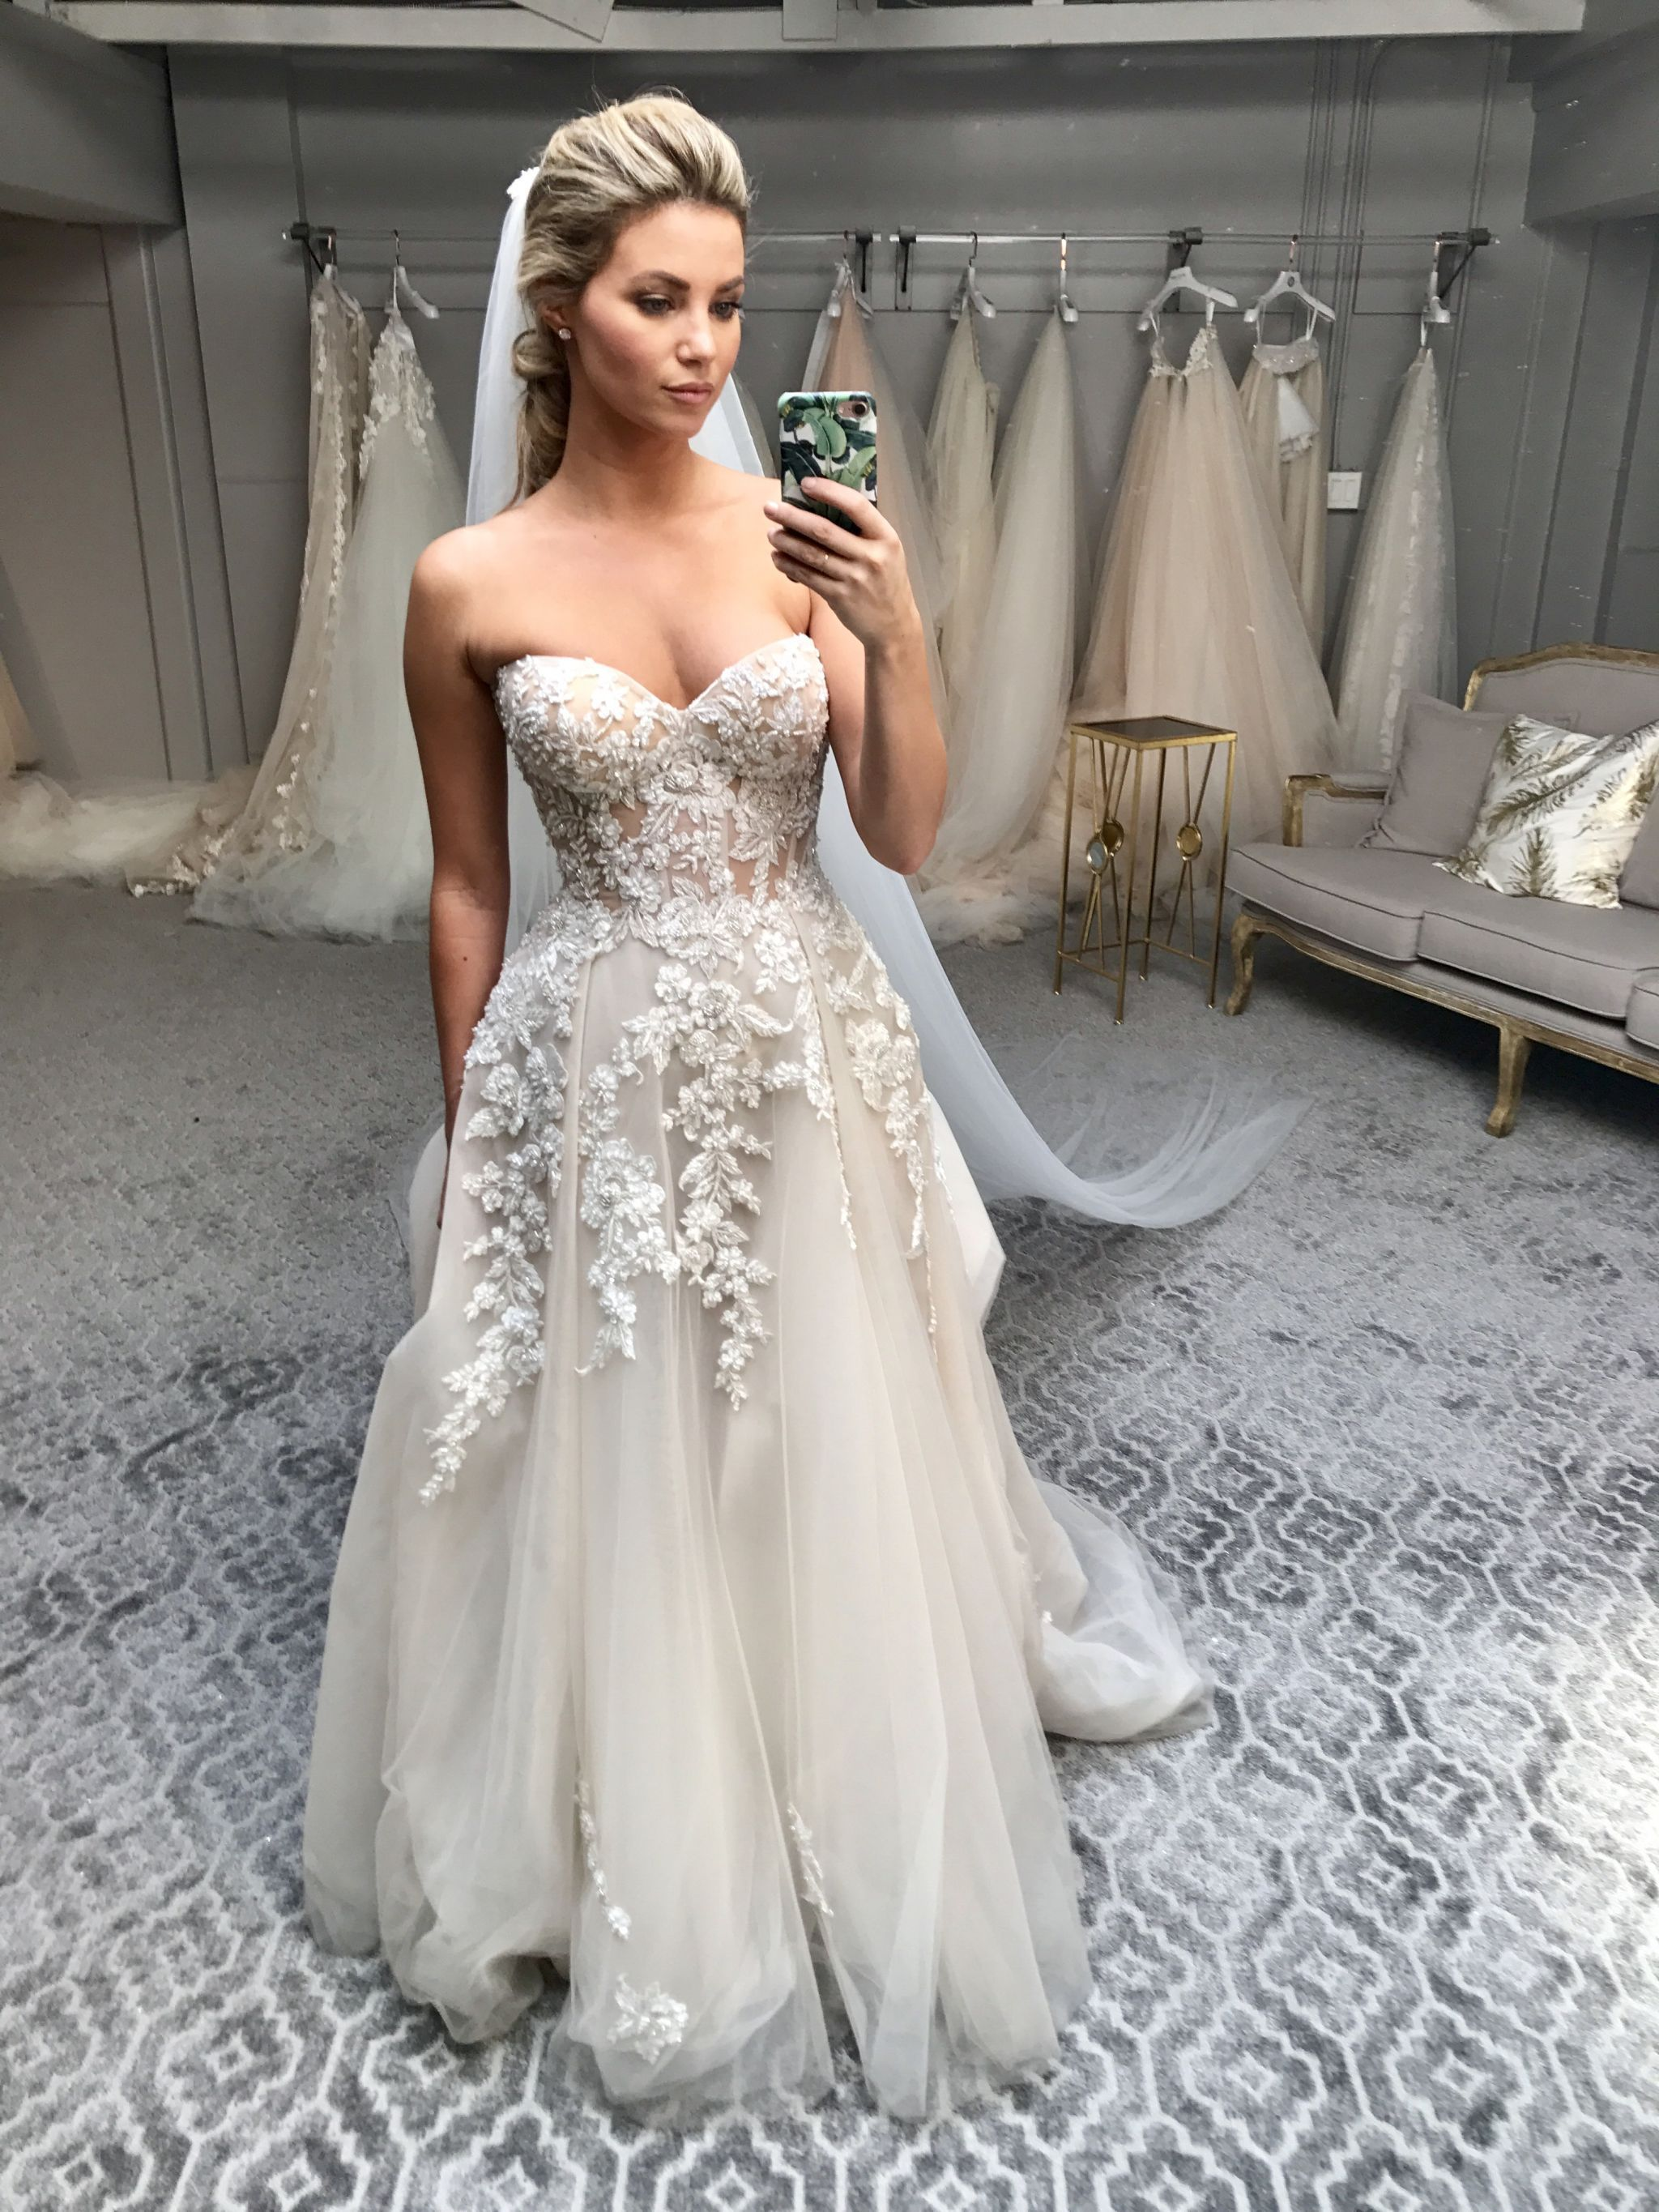 amber lancaster wearing galia lahav for the wedding in 2019